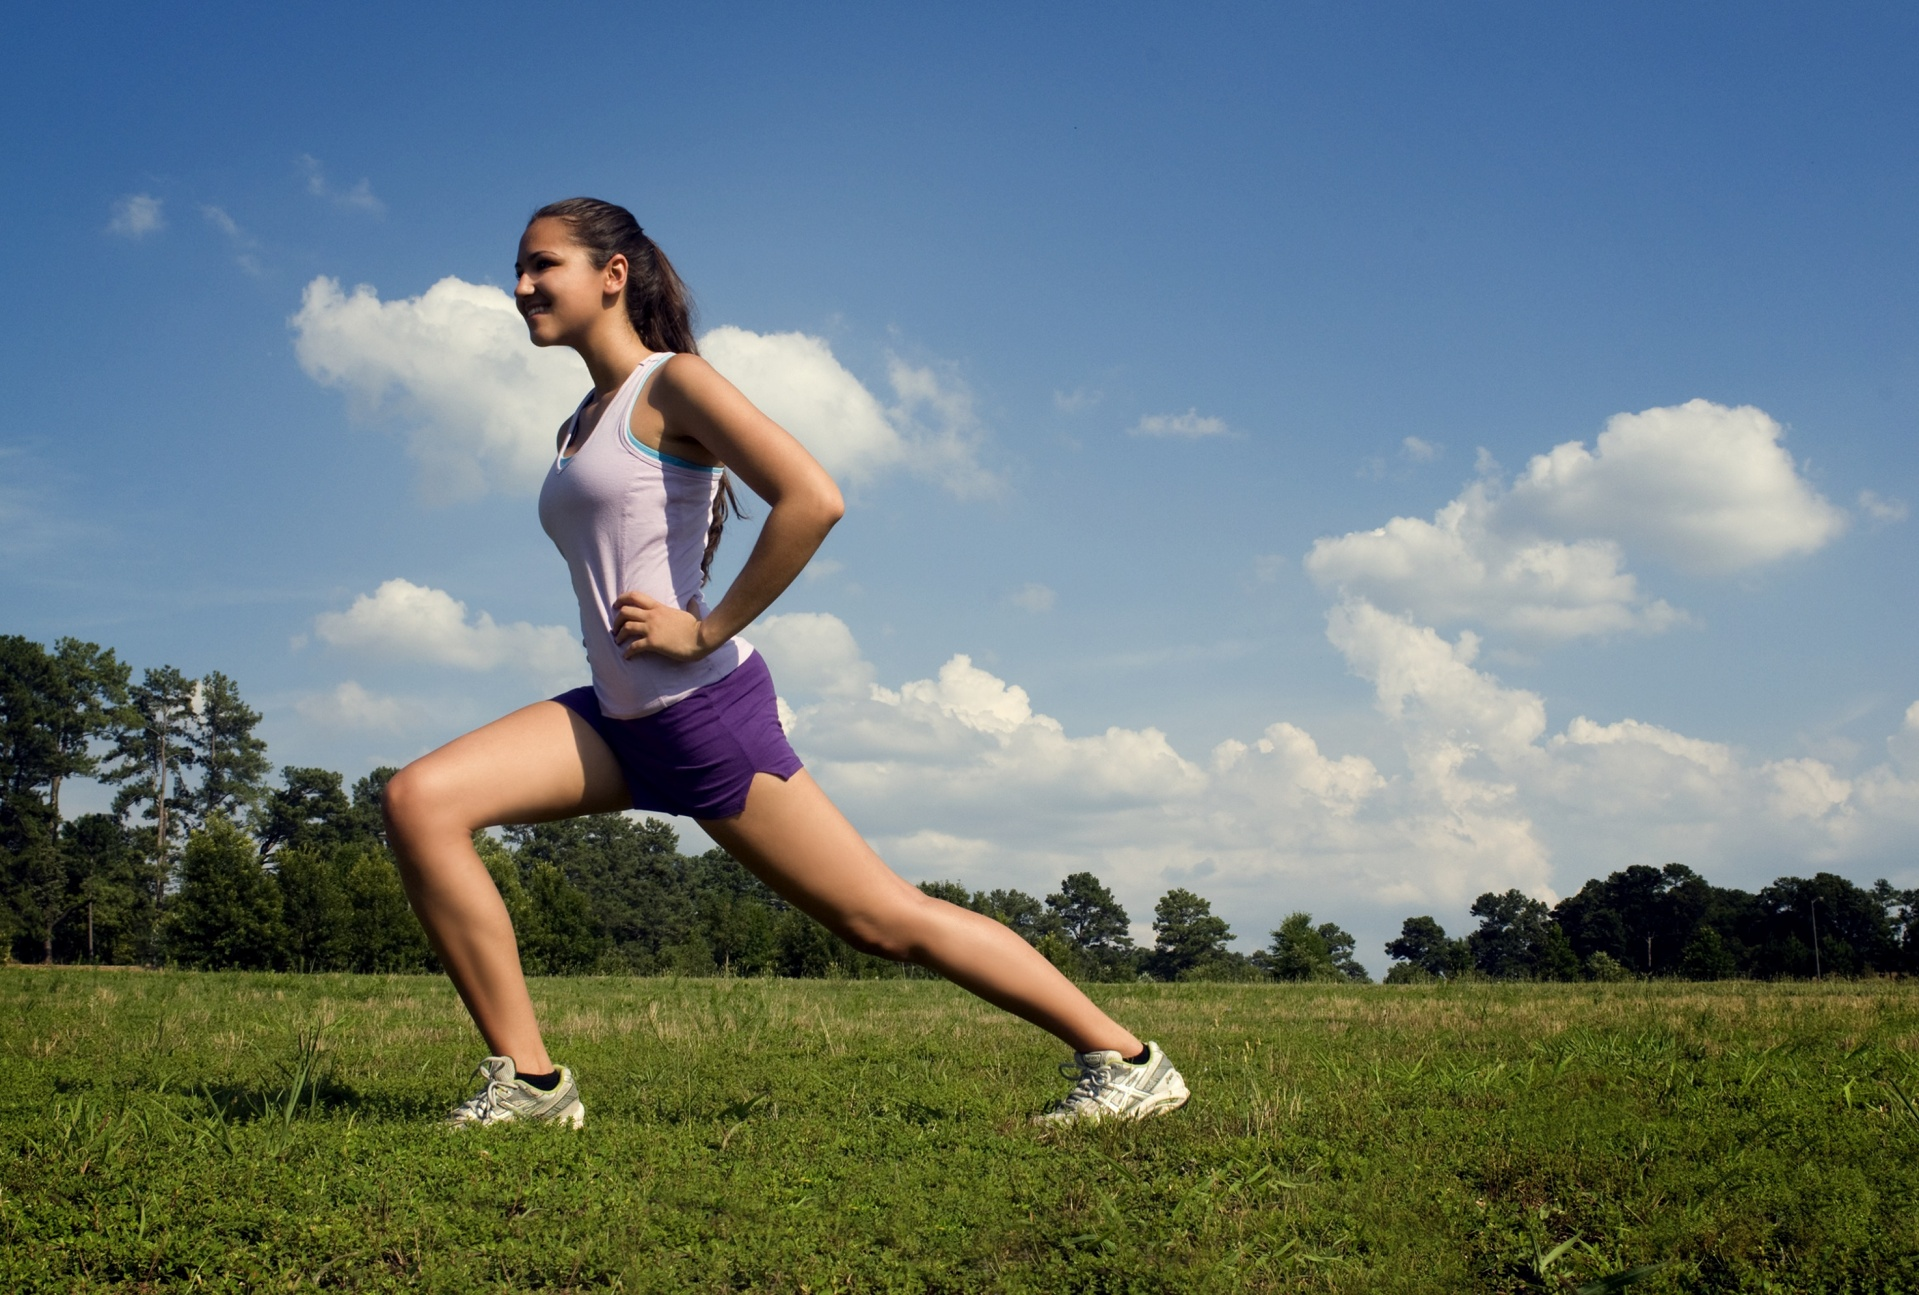 Girl,sport,stretching,exercise,fitness - free image from needpix.com